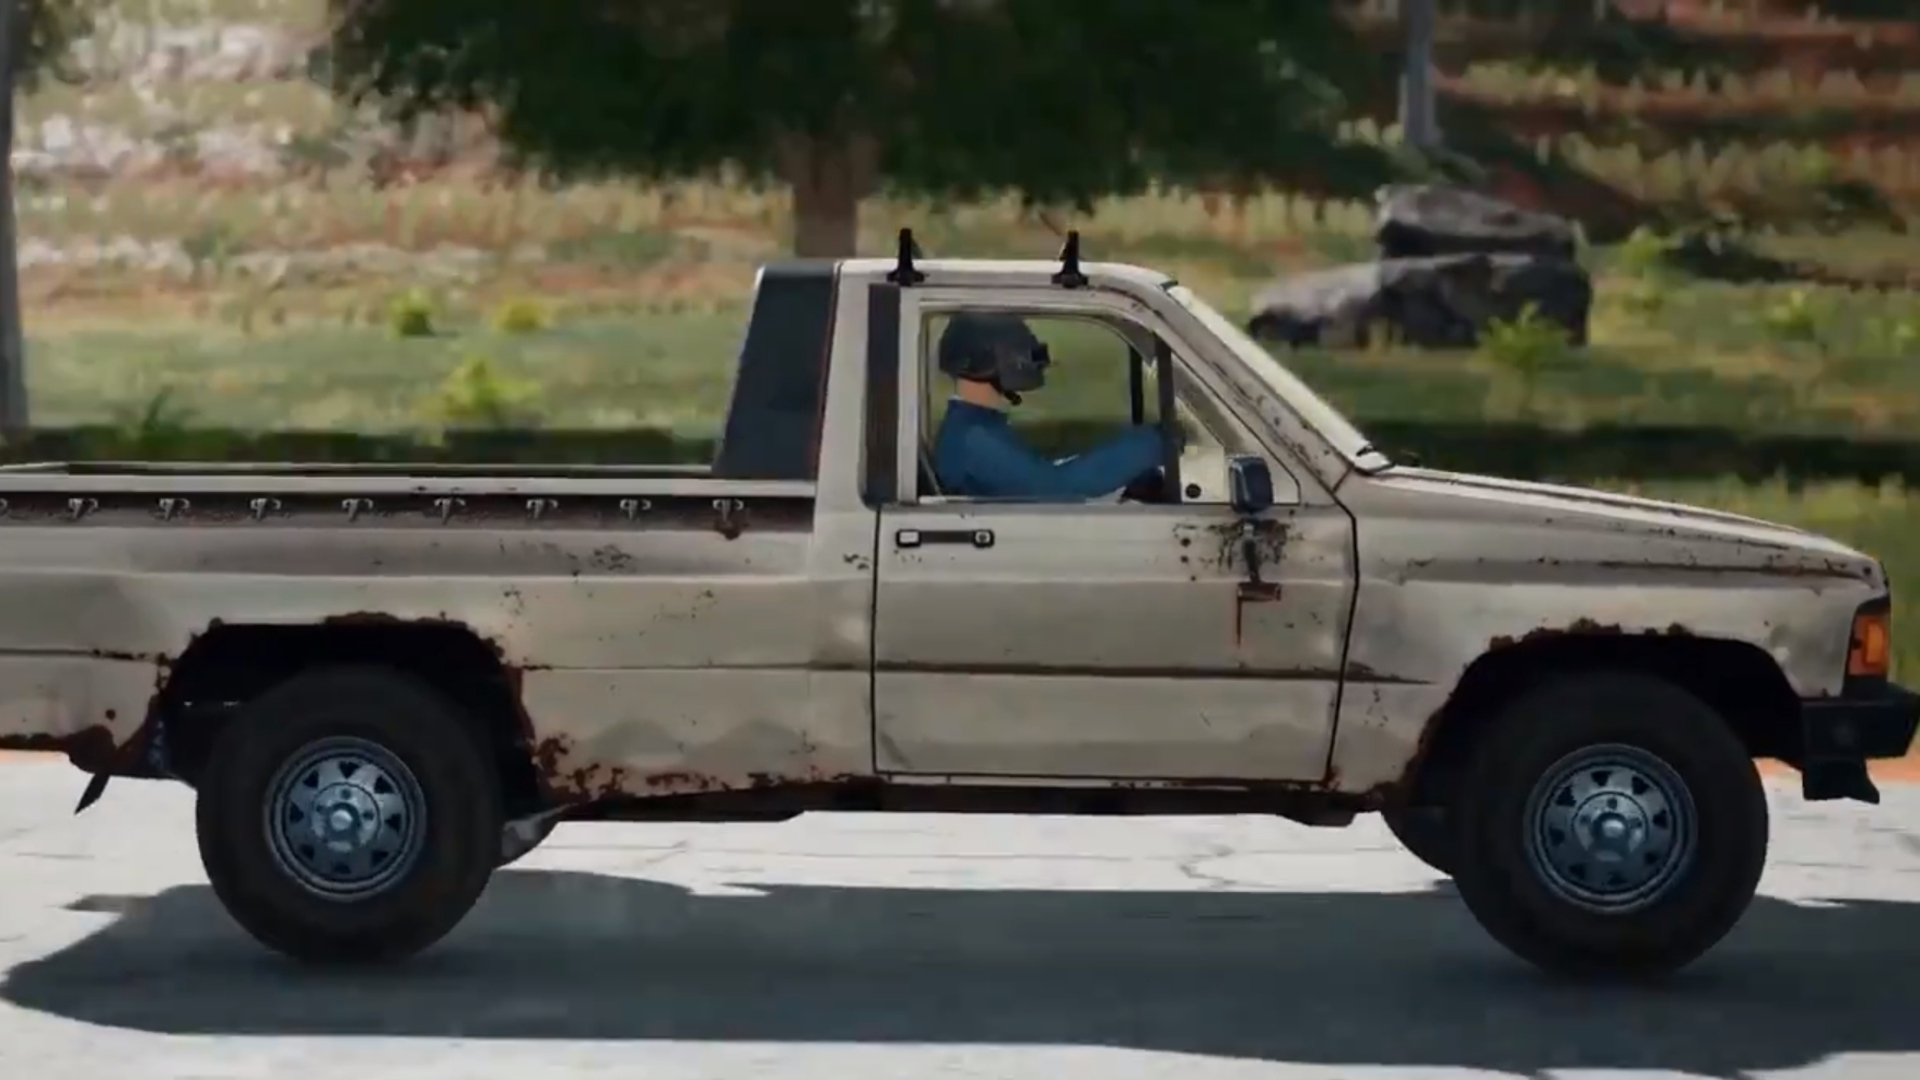 Pubg Sanhok Vehicle And Gun Unveiled As Studio Pledges More Frequent